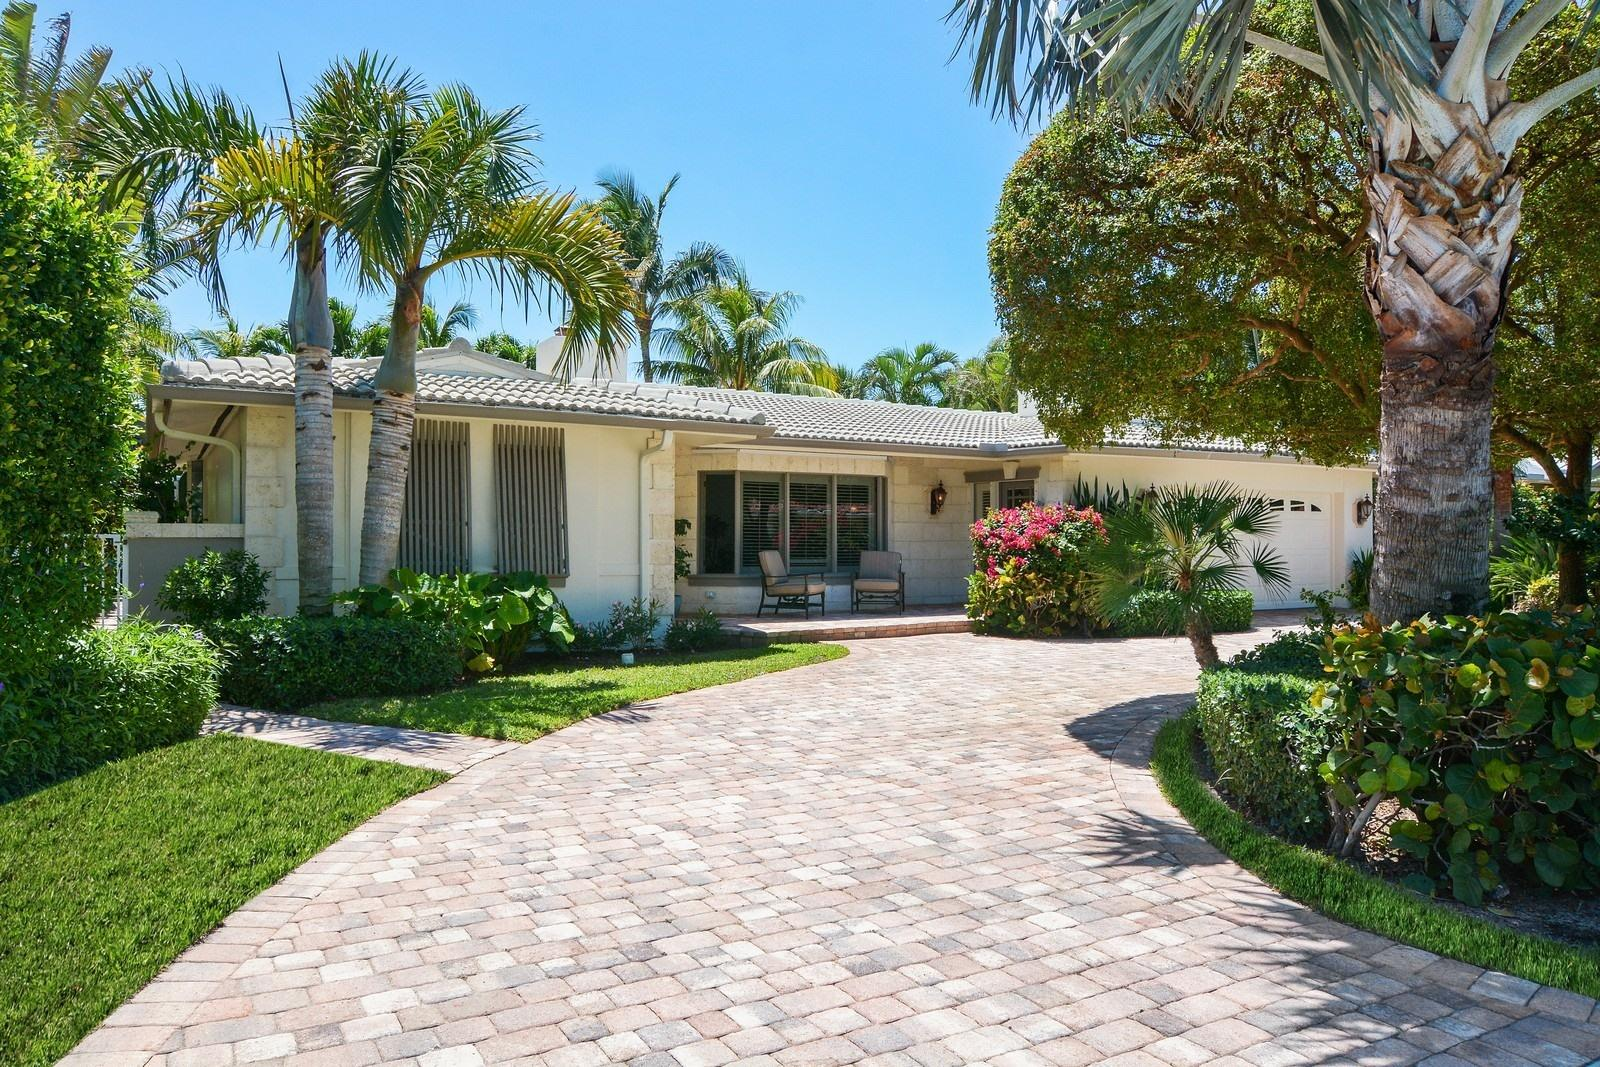 Home for sale in Jupiter Inlet Colony Jupiter Inlet Colony Florida